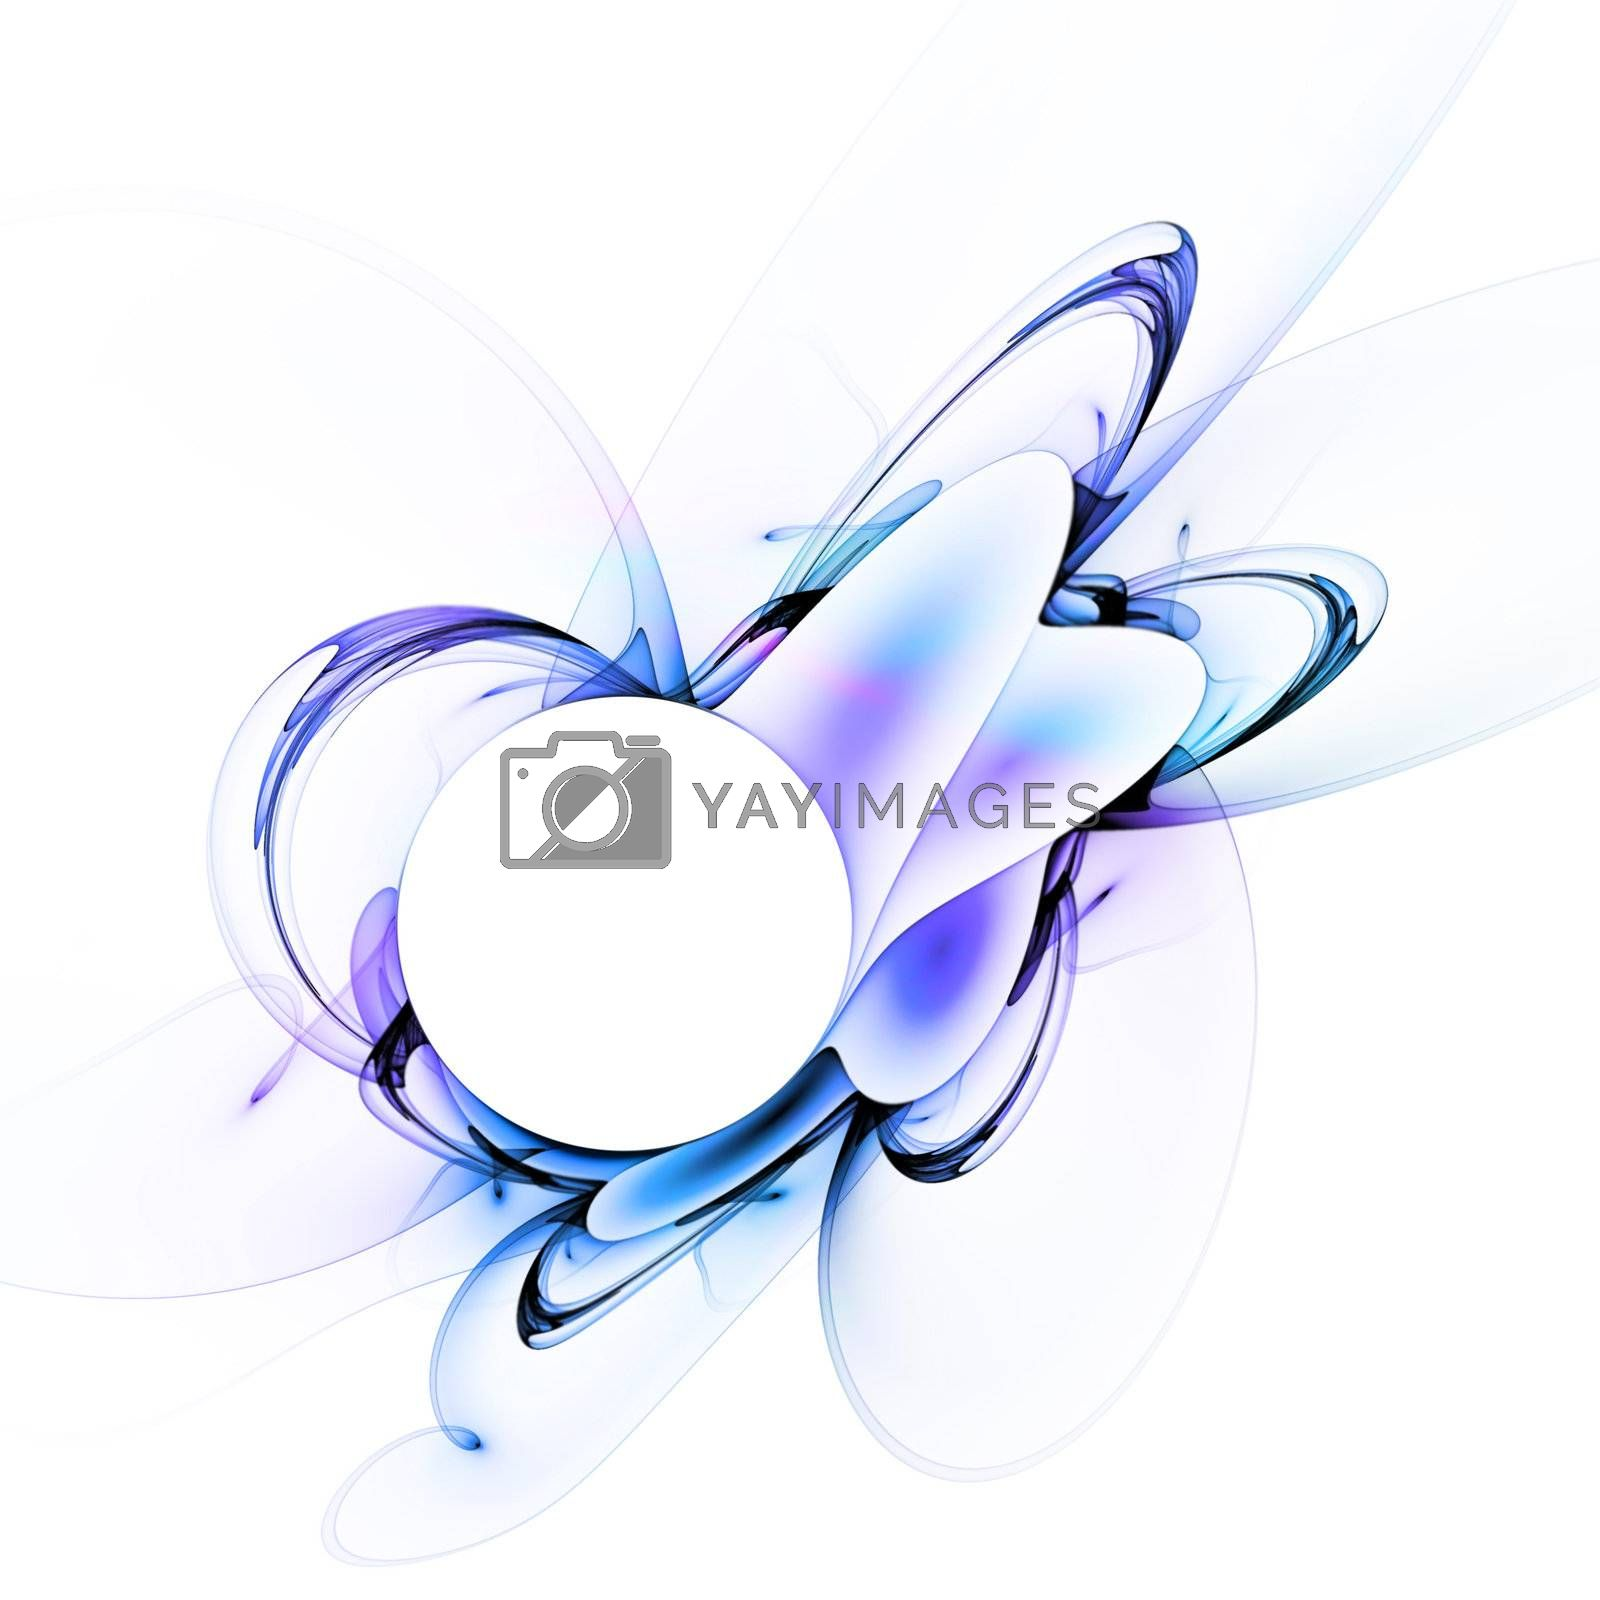 A glowing fractal design that works great as a background or layout.